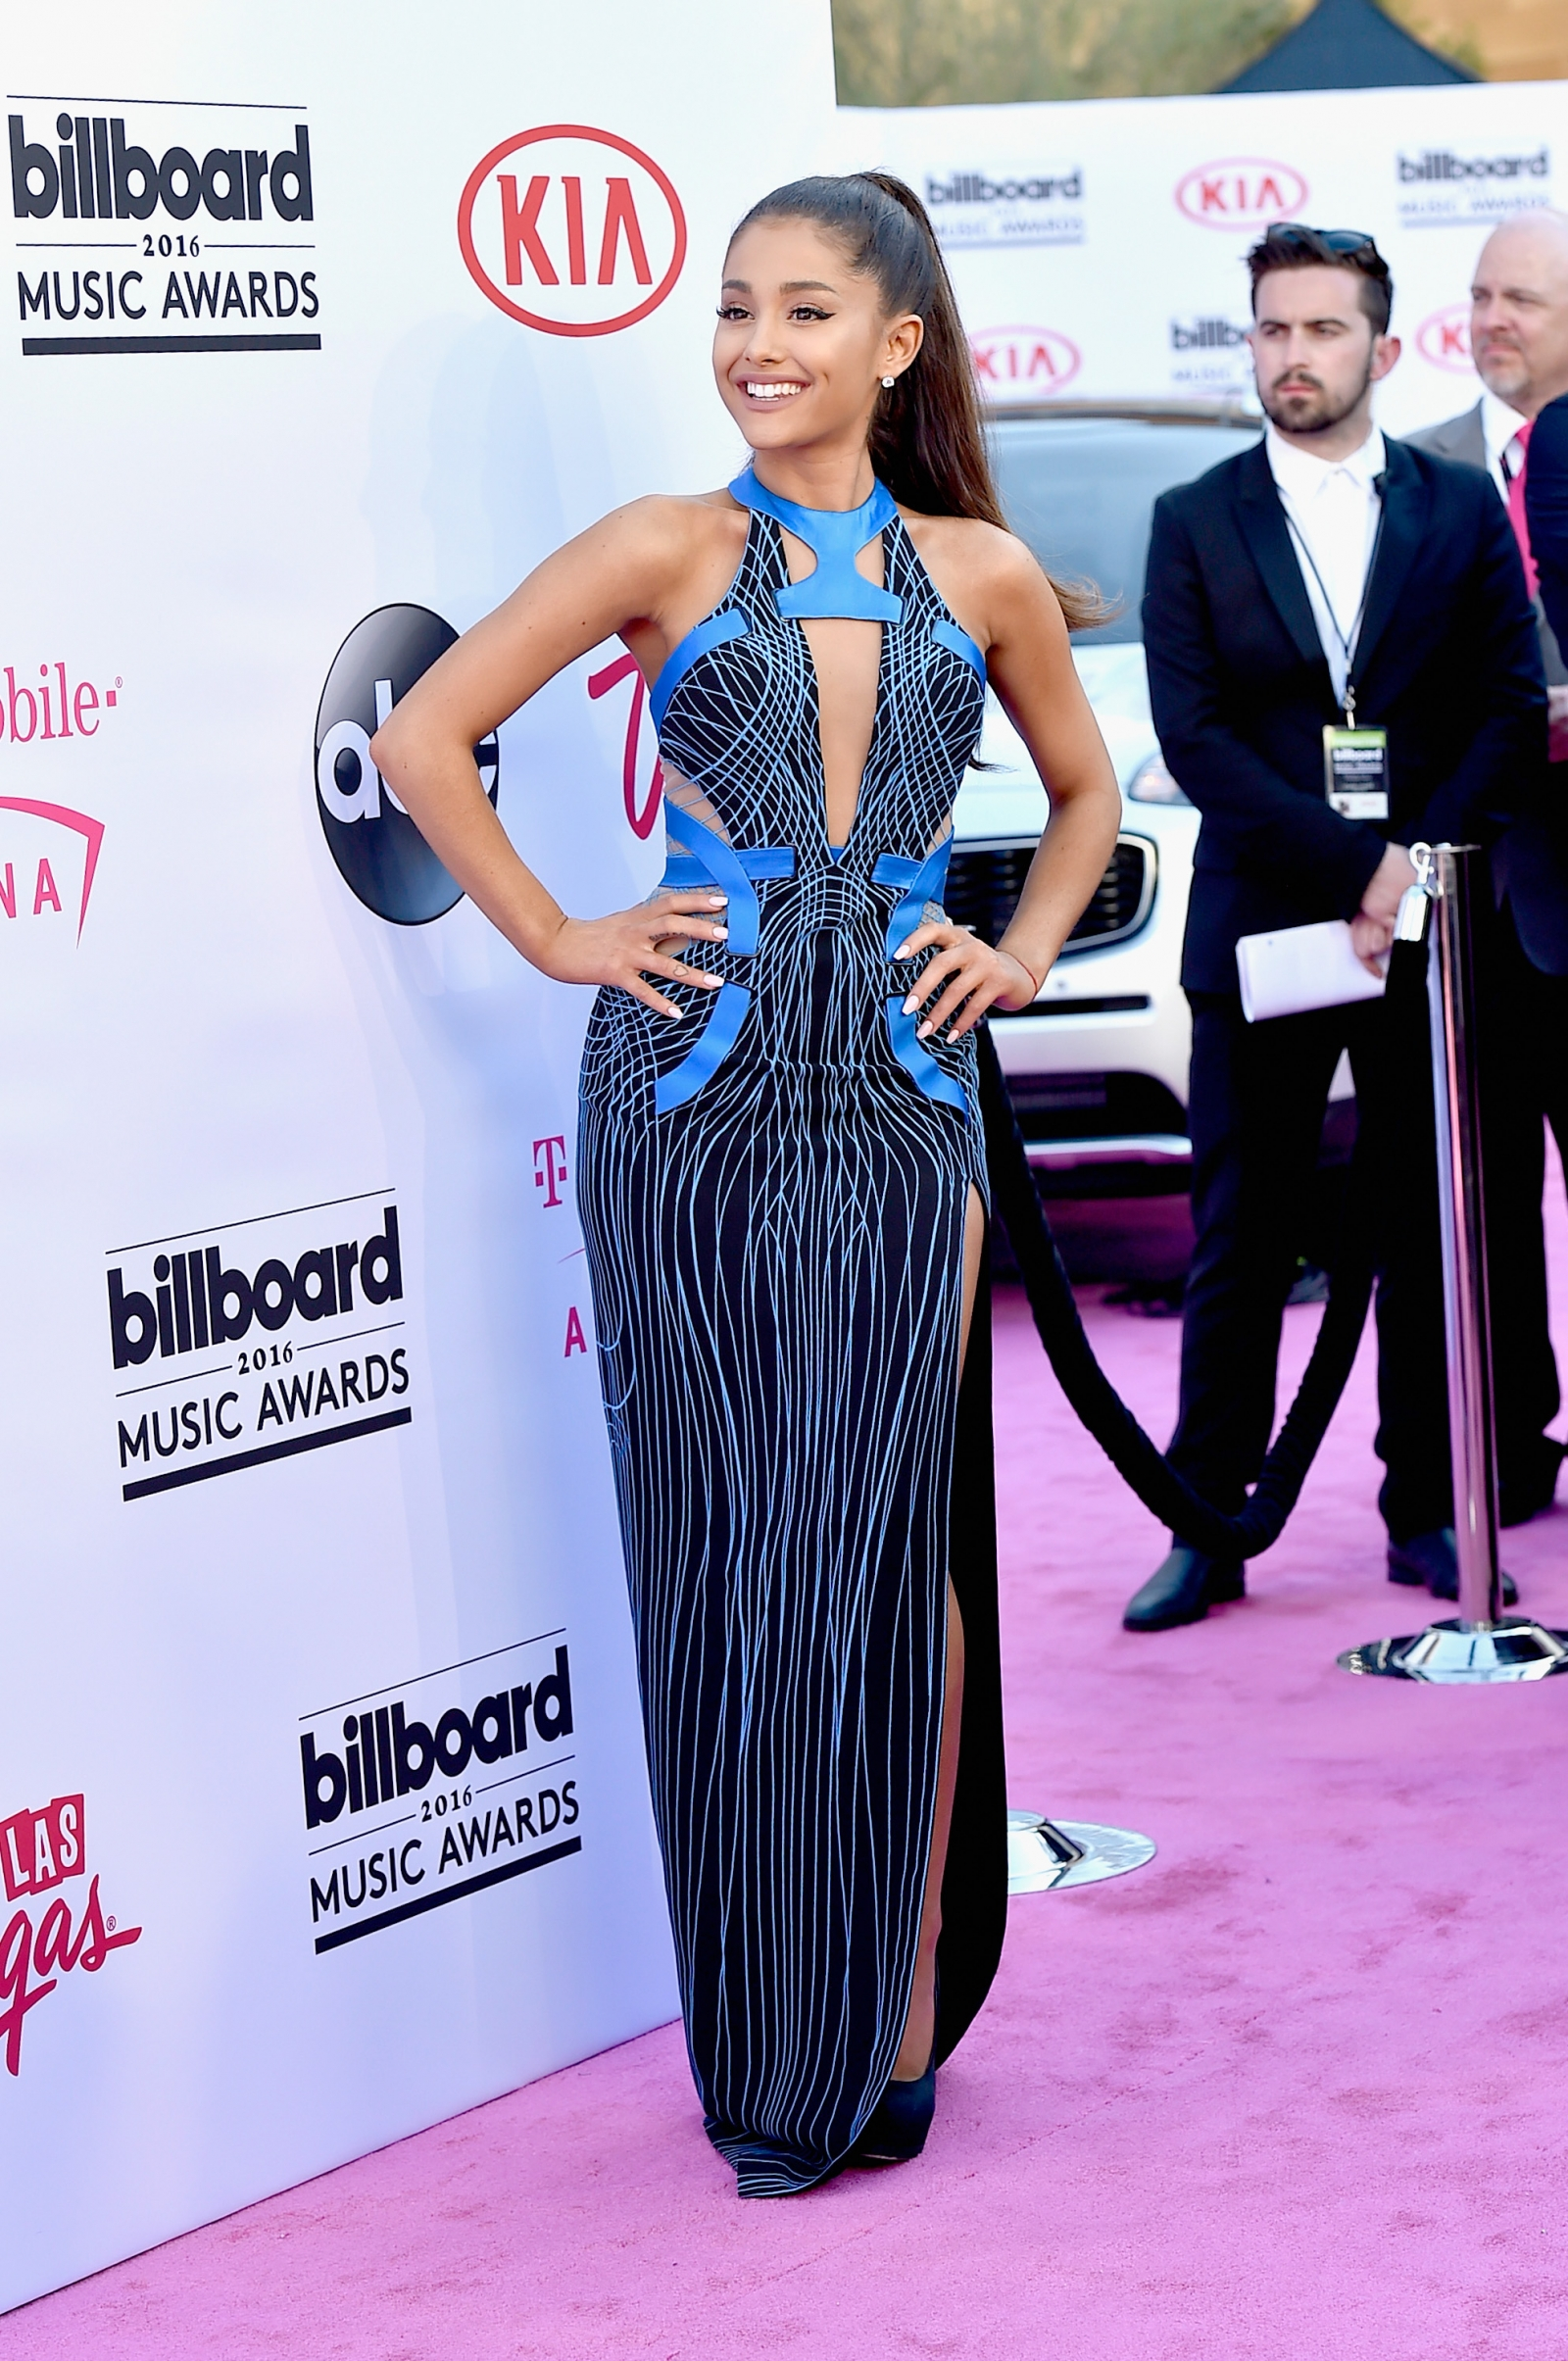 Billboard music awards 2016